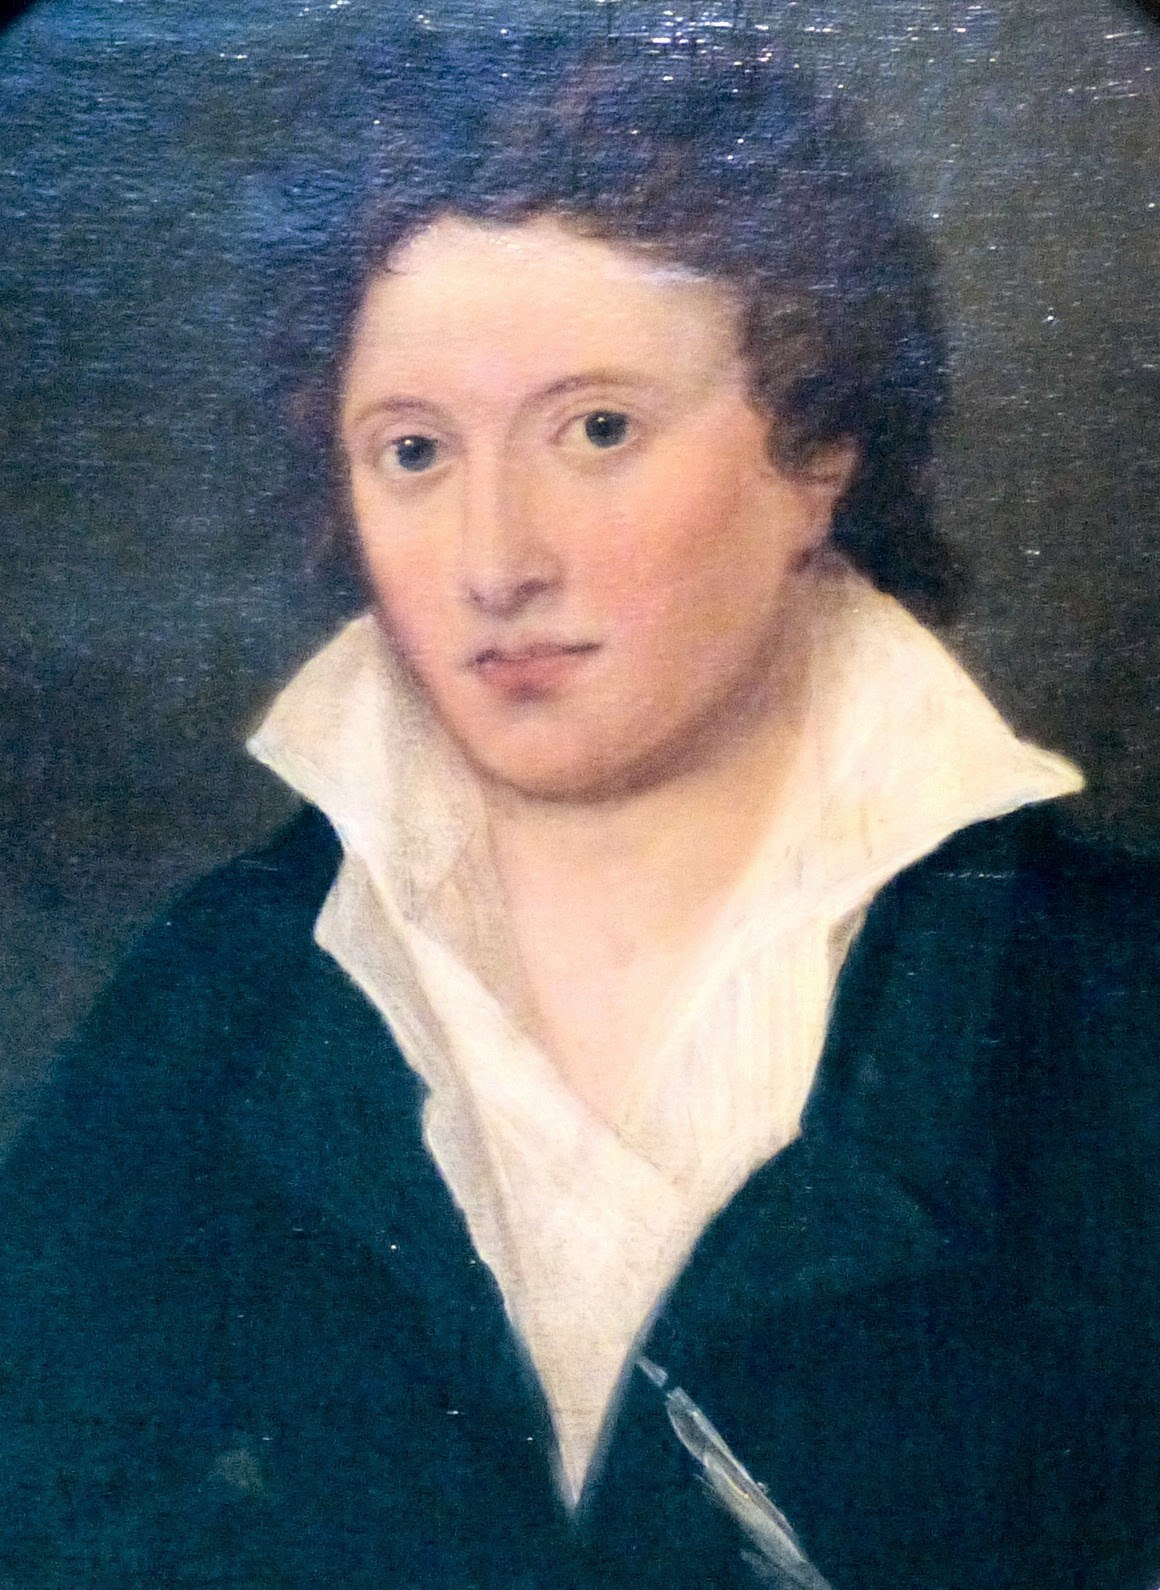 Percy Bysshe Shelley  by Amelia Curran (1819)  at the National Portrait Gallery, London